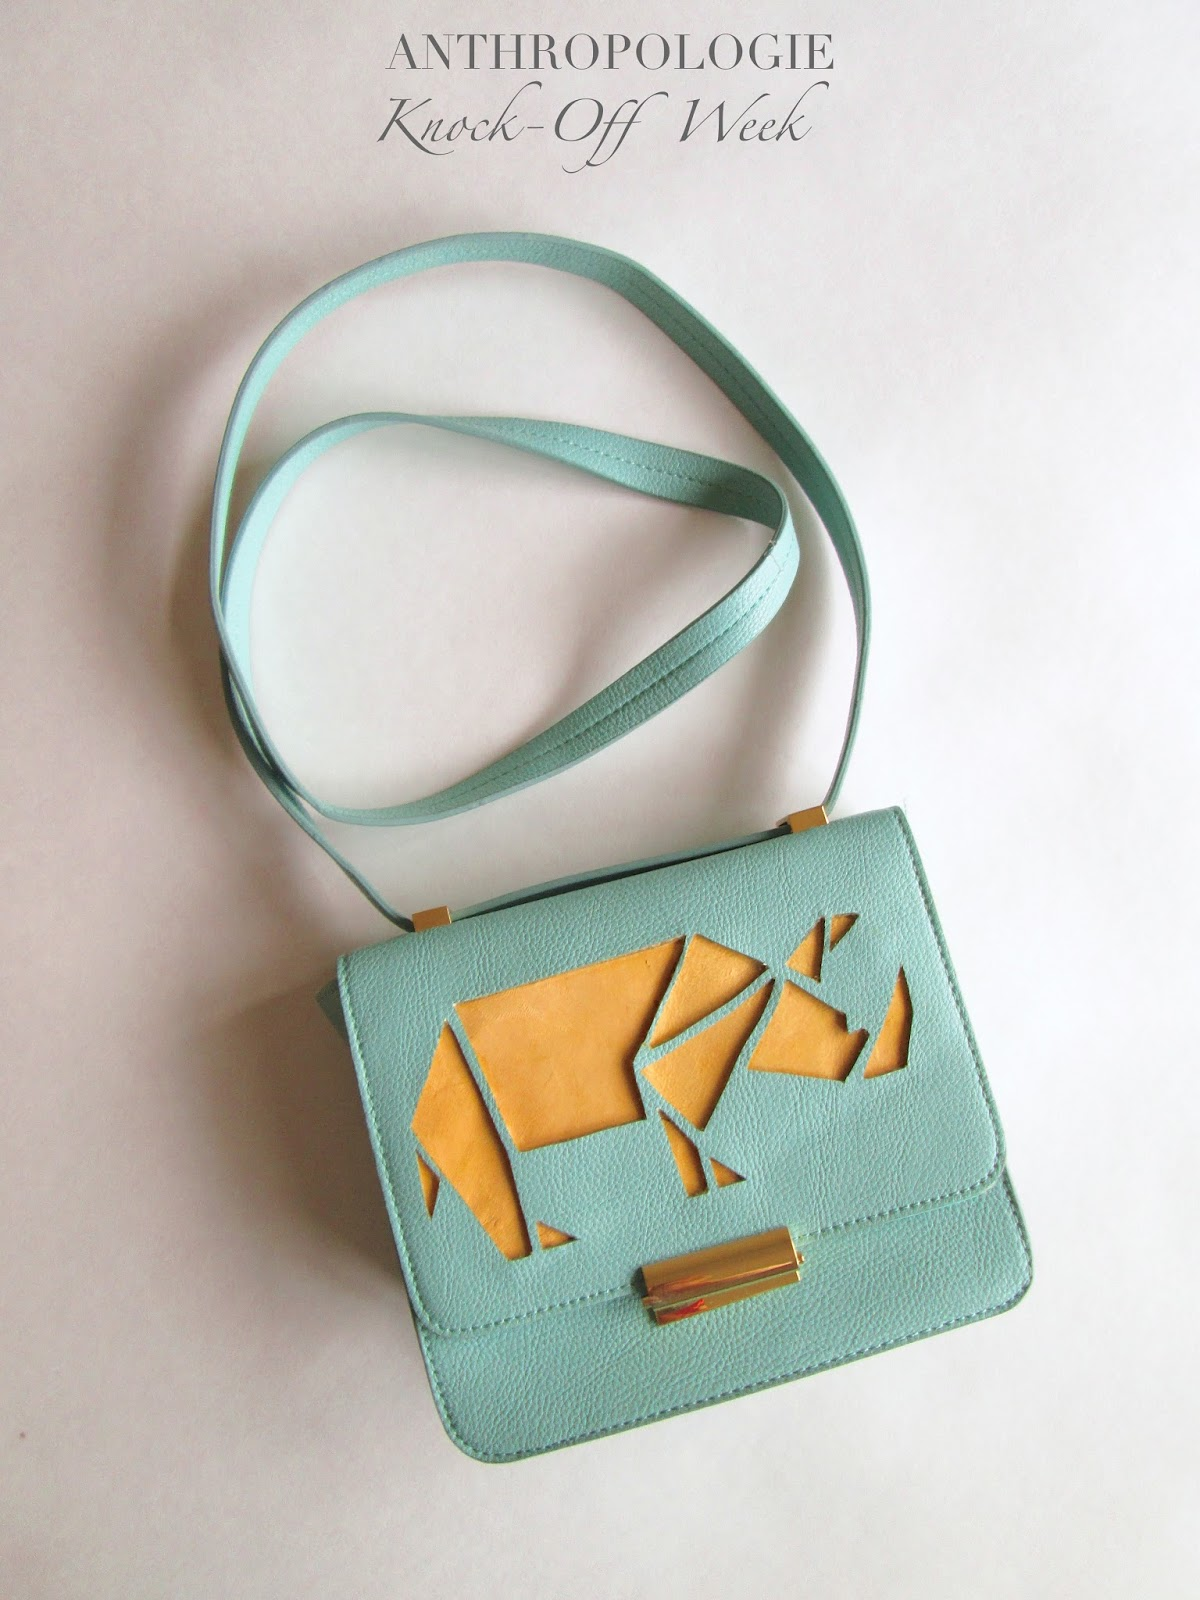 Anthropologie Knock-off Rhino Crossbody Bag